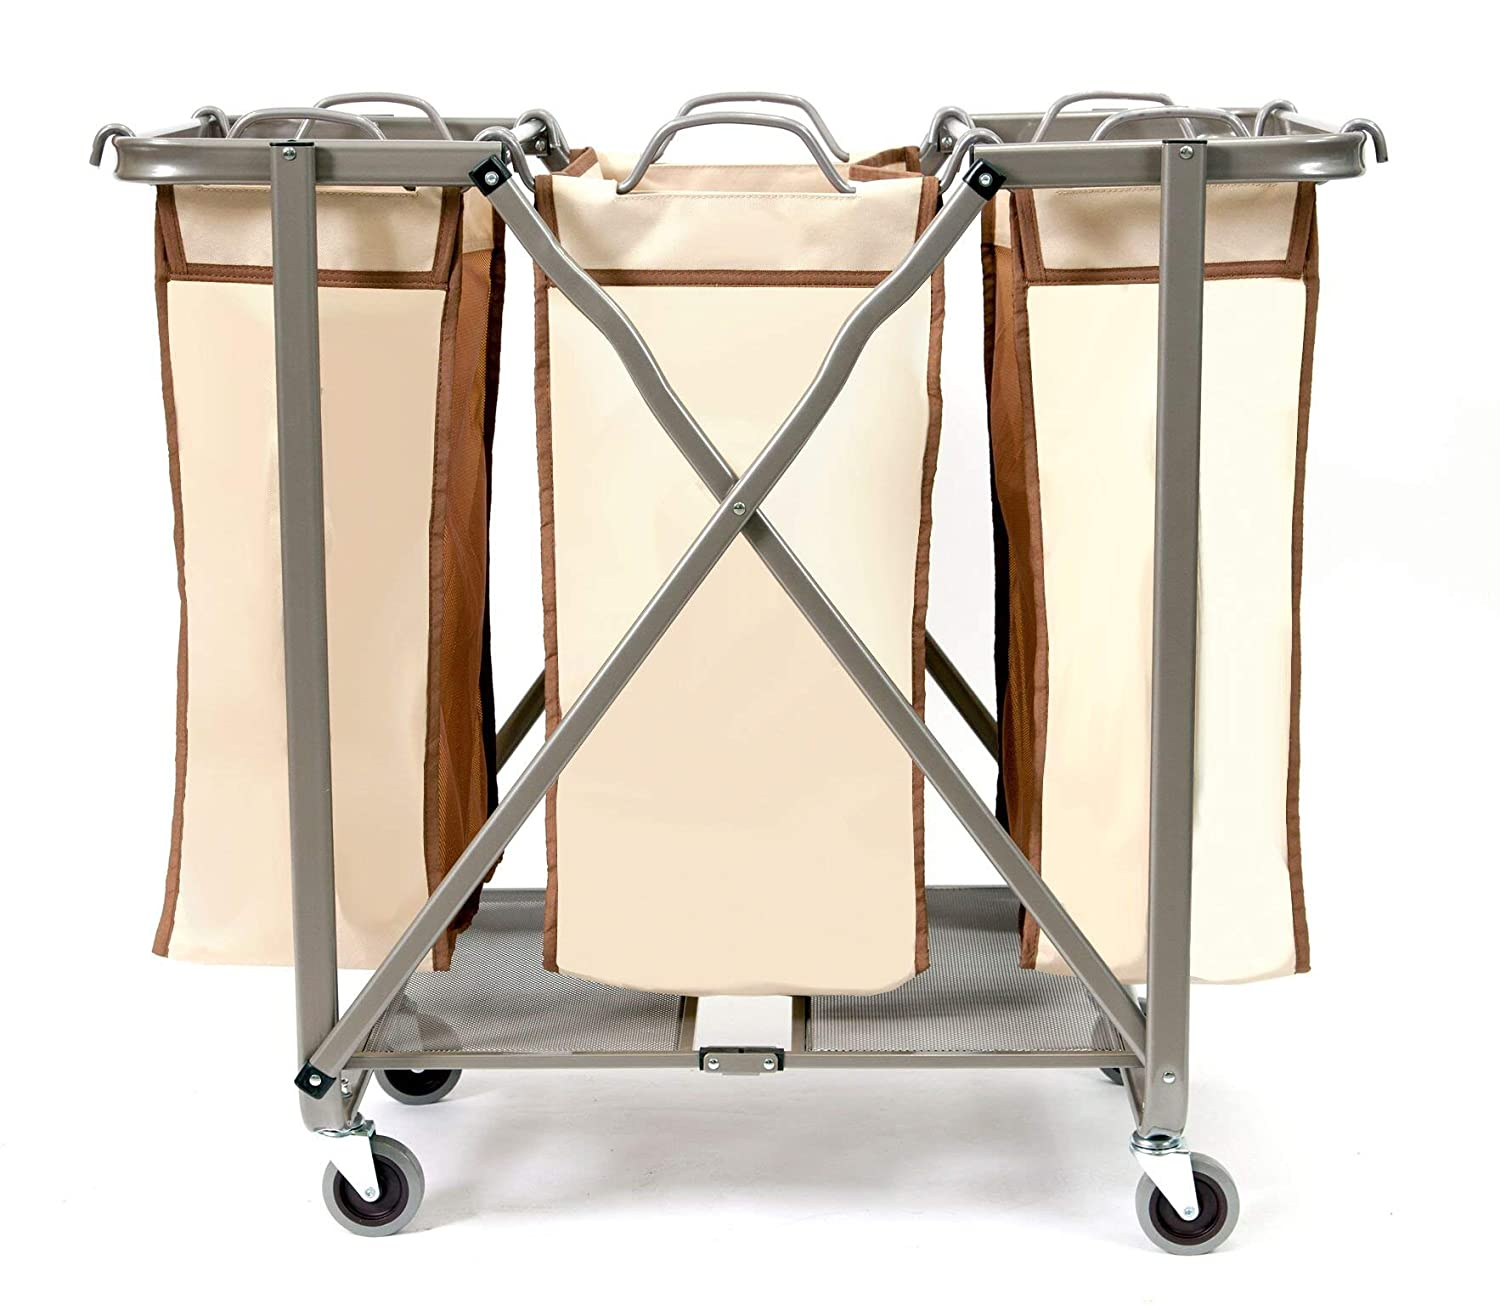 No Assembly Required Brown SEINA Heavy Duty Foldable Laundry Sorter with Removable Odor Resistant Bags Use FLS01 Folds Flat for Easy Storage-Super Smooth Glide Wheels-